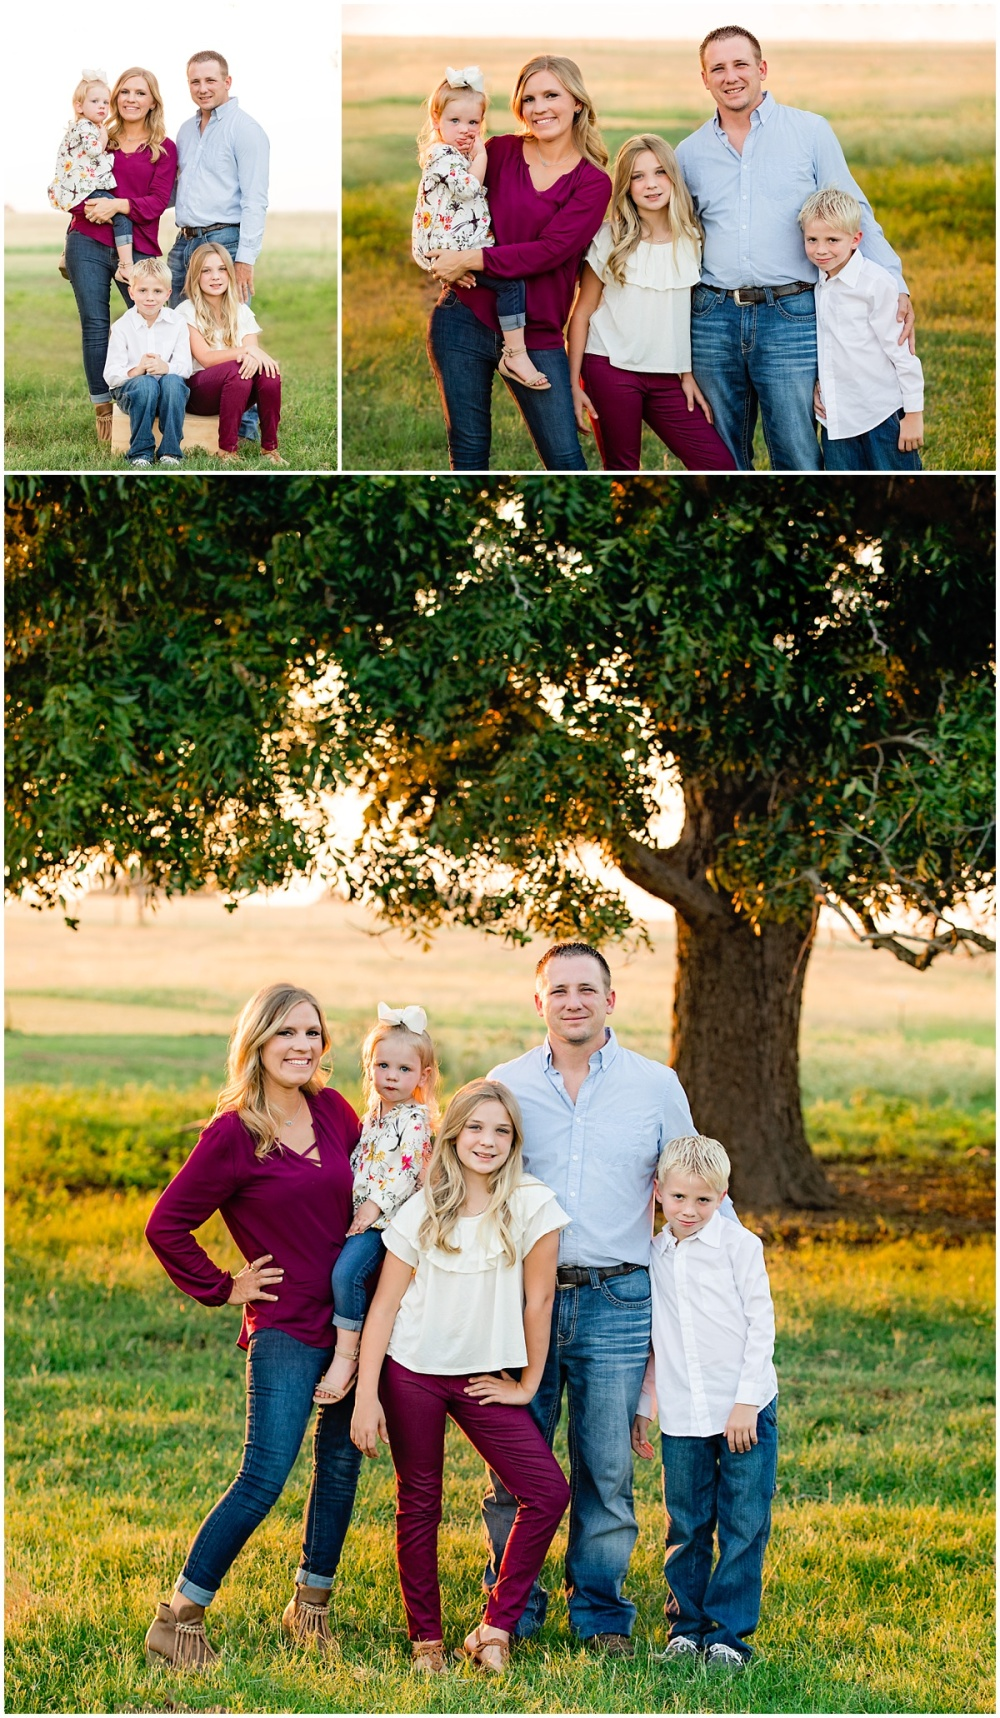 Family-Children-Maternity-Portraits-San-Antonio-Hill-Country-Texas-Carly-Barton-Photography_0024.jpg